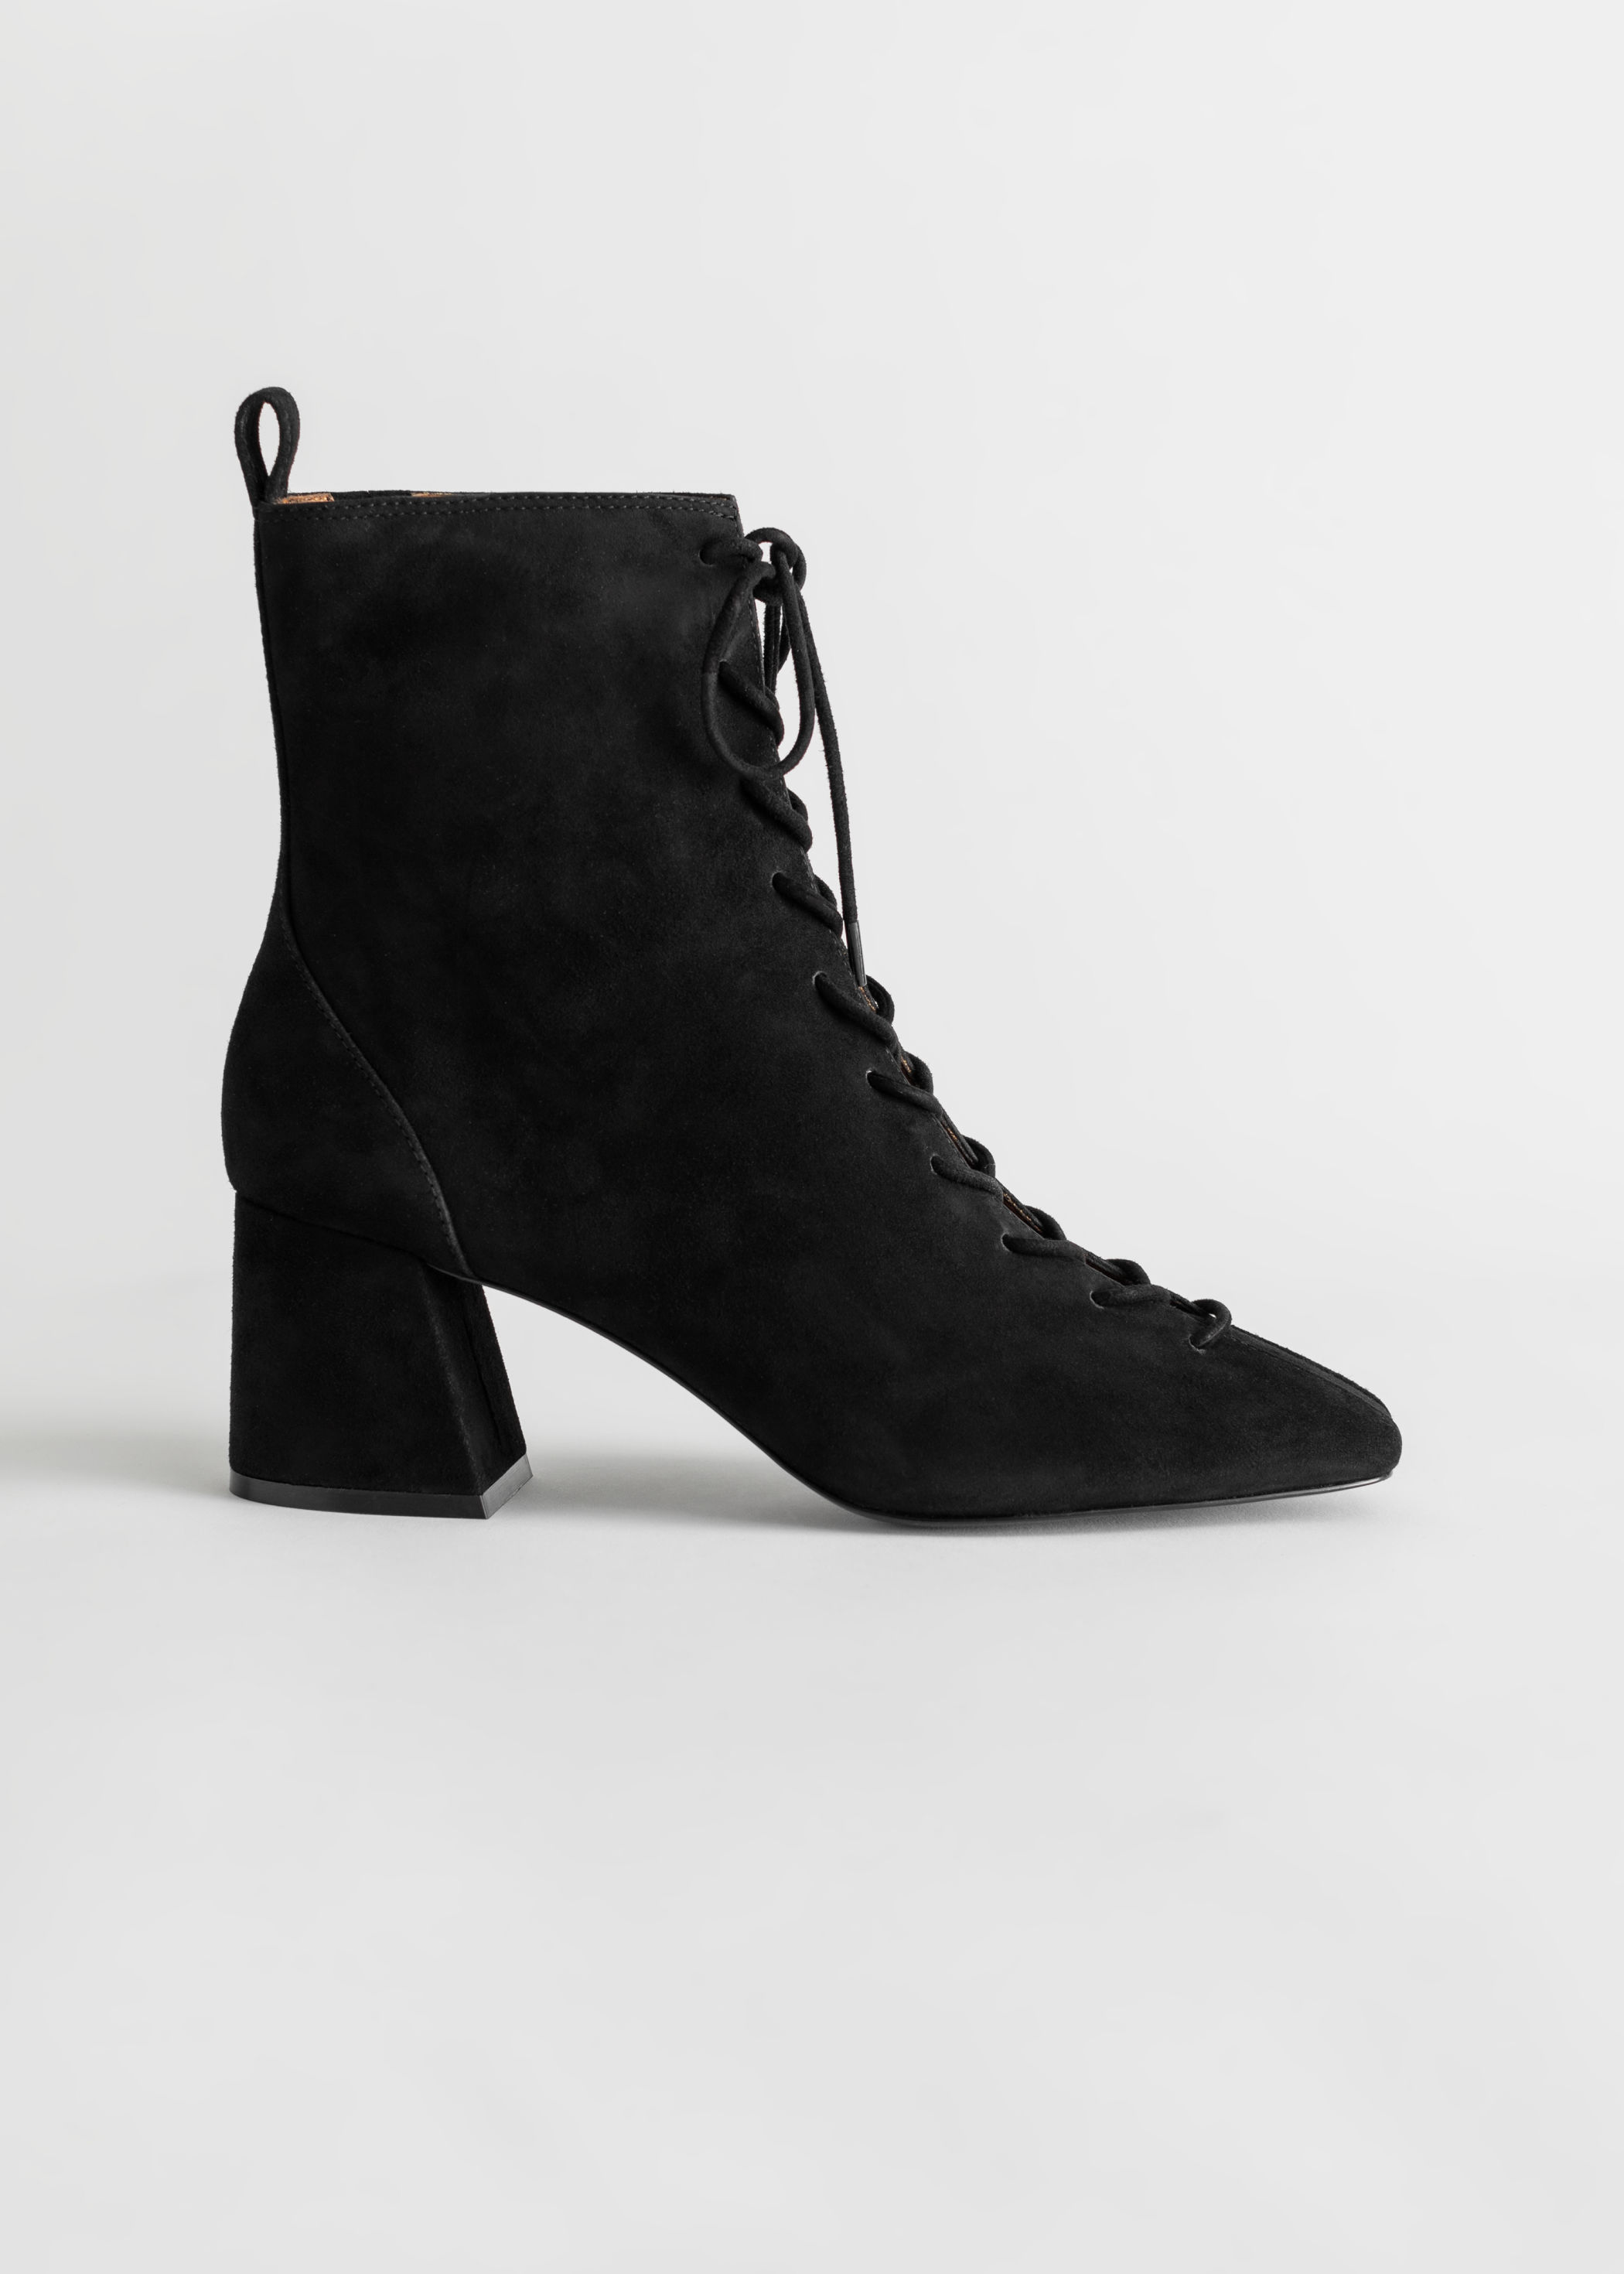 Suede Lace Up Anke Boots by & Other Stories